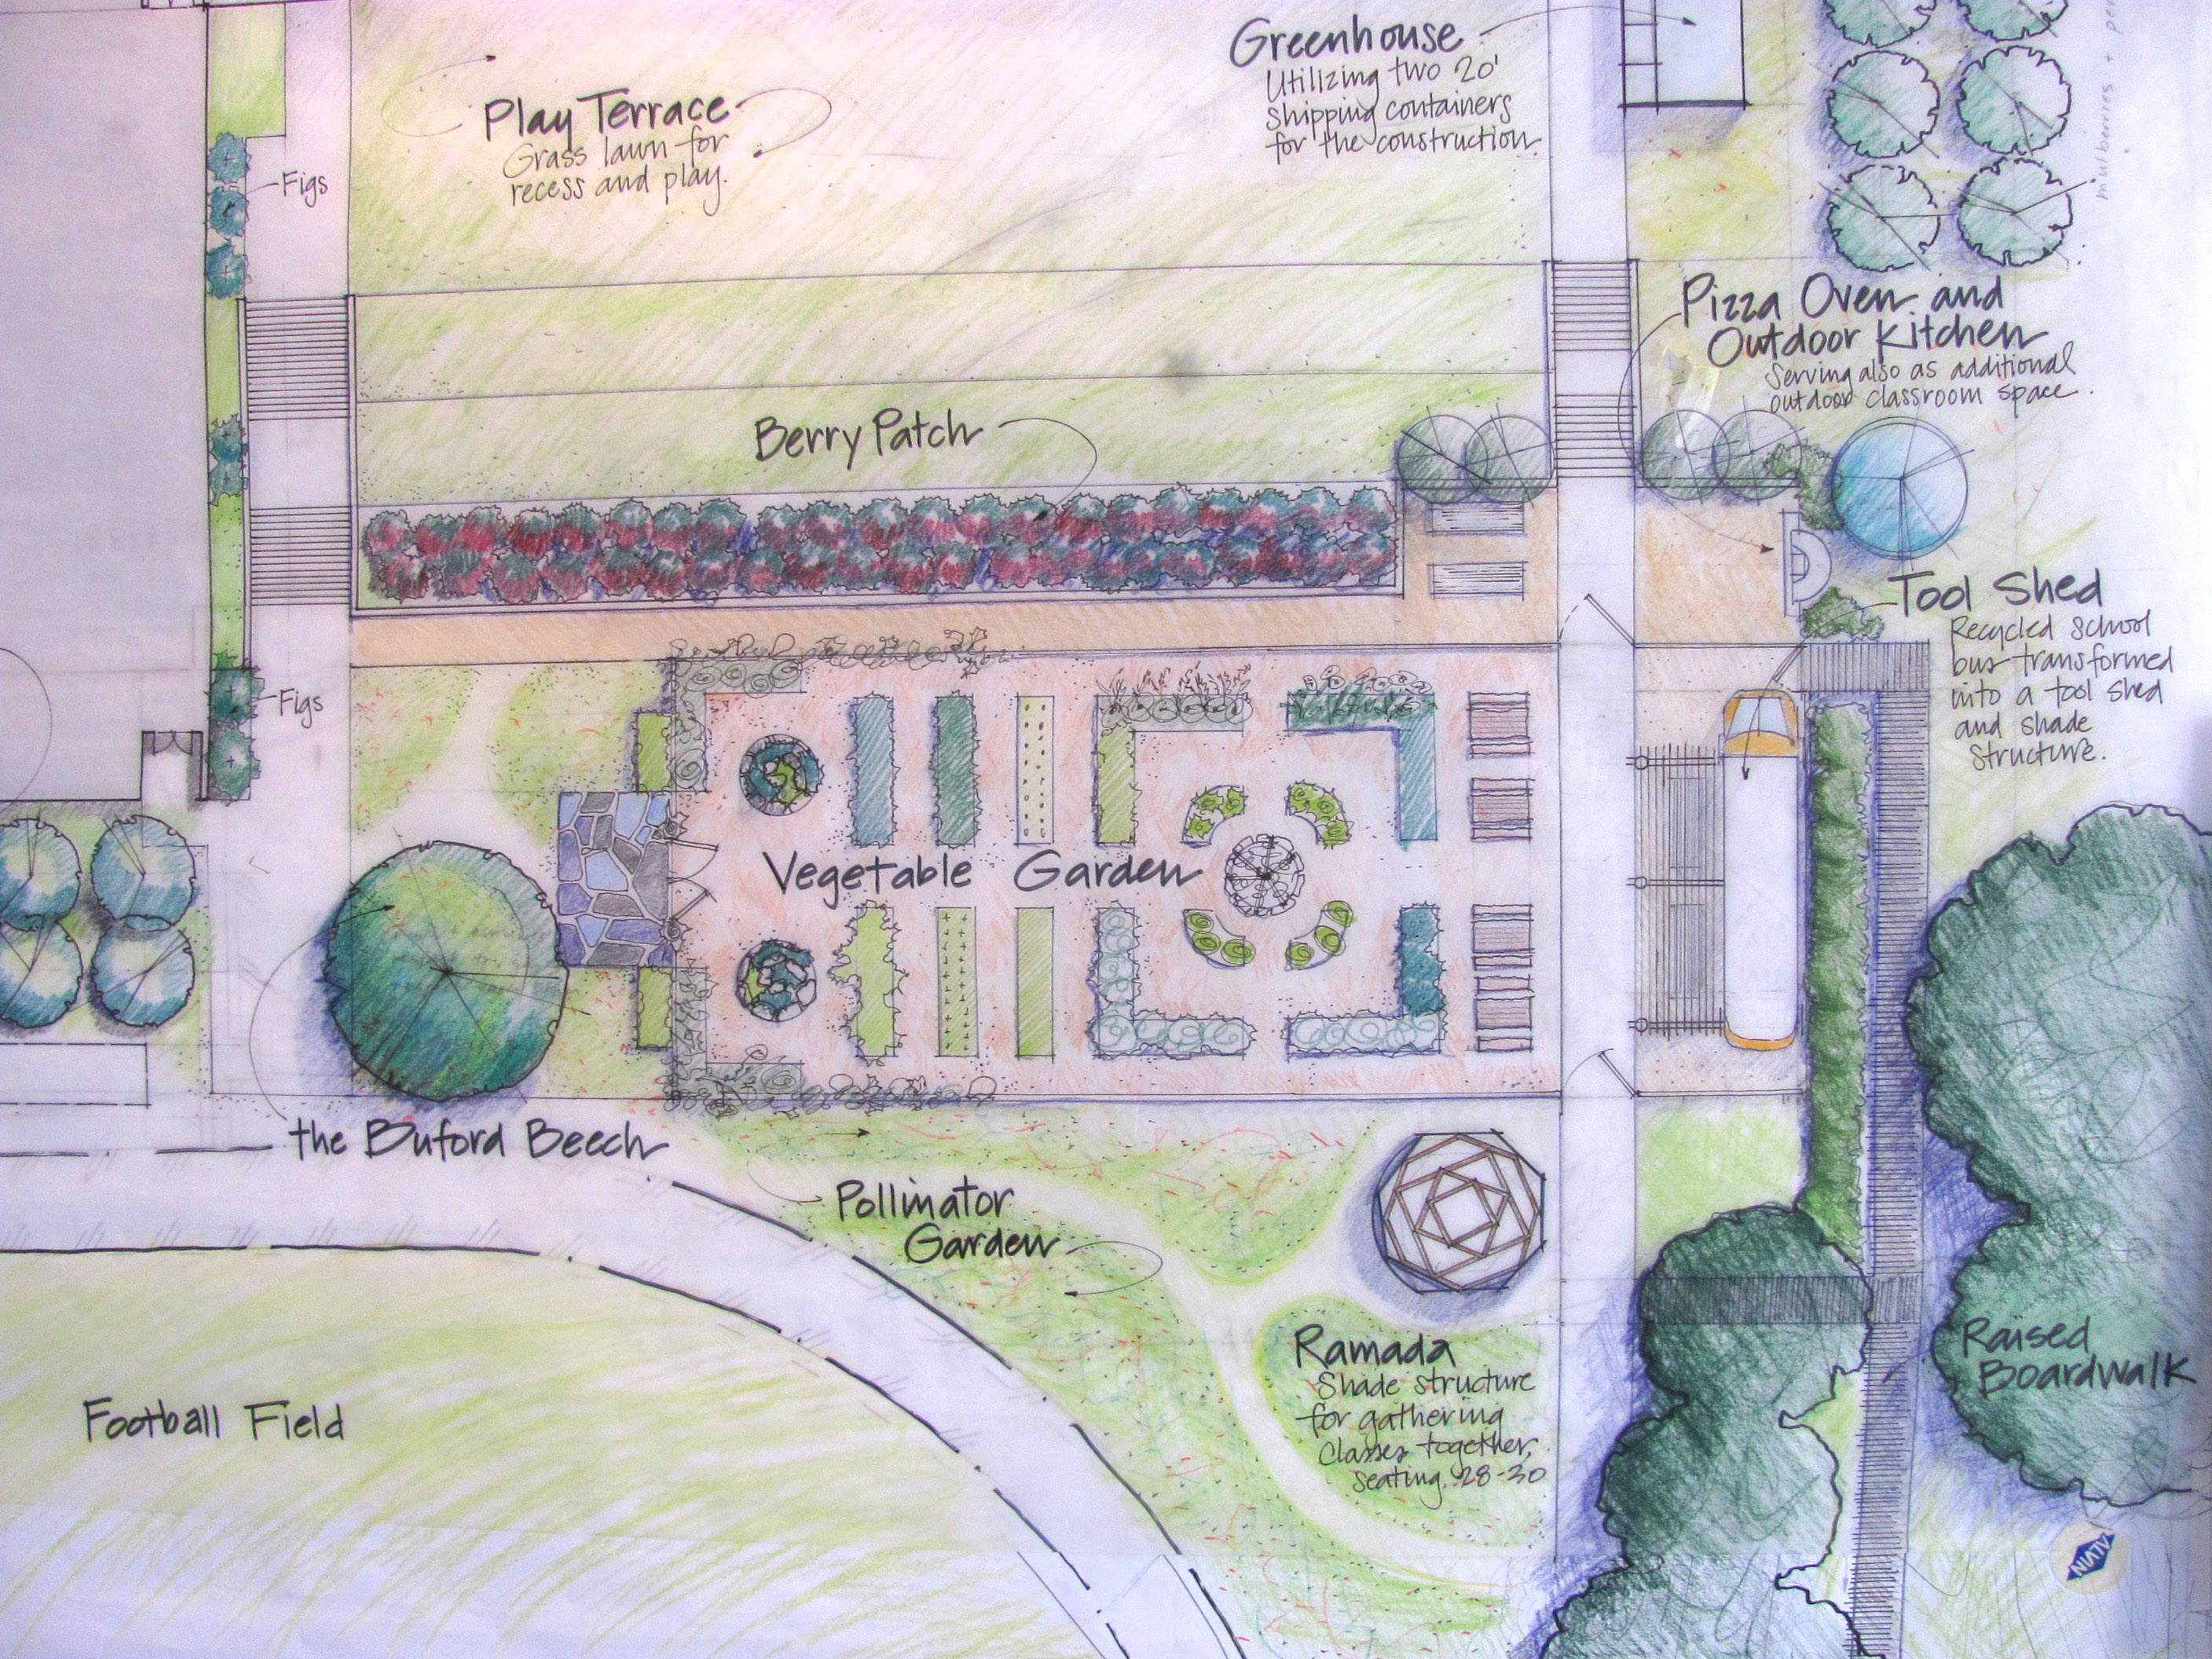 Buford School: Garden Project